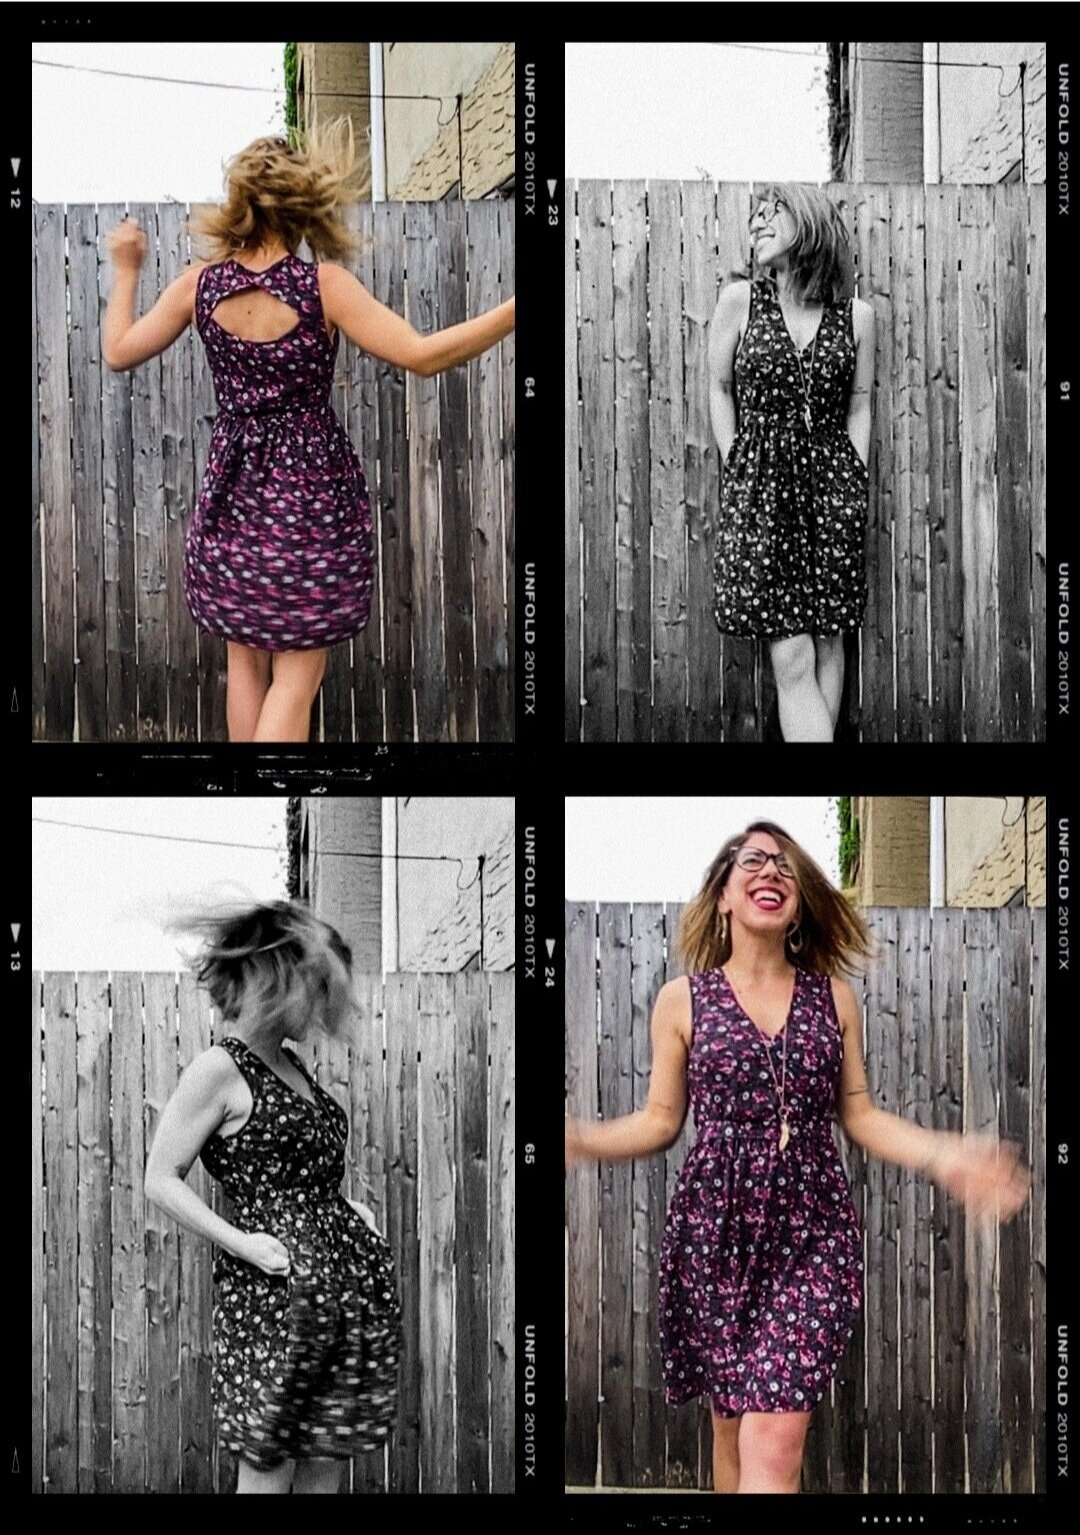 FaceTime Photos of a woman dancing in the wind